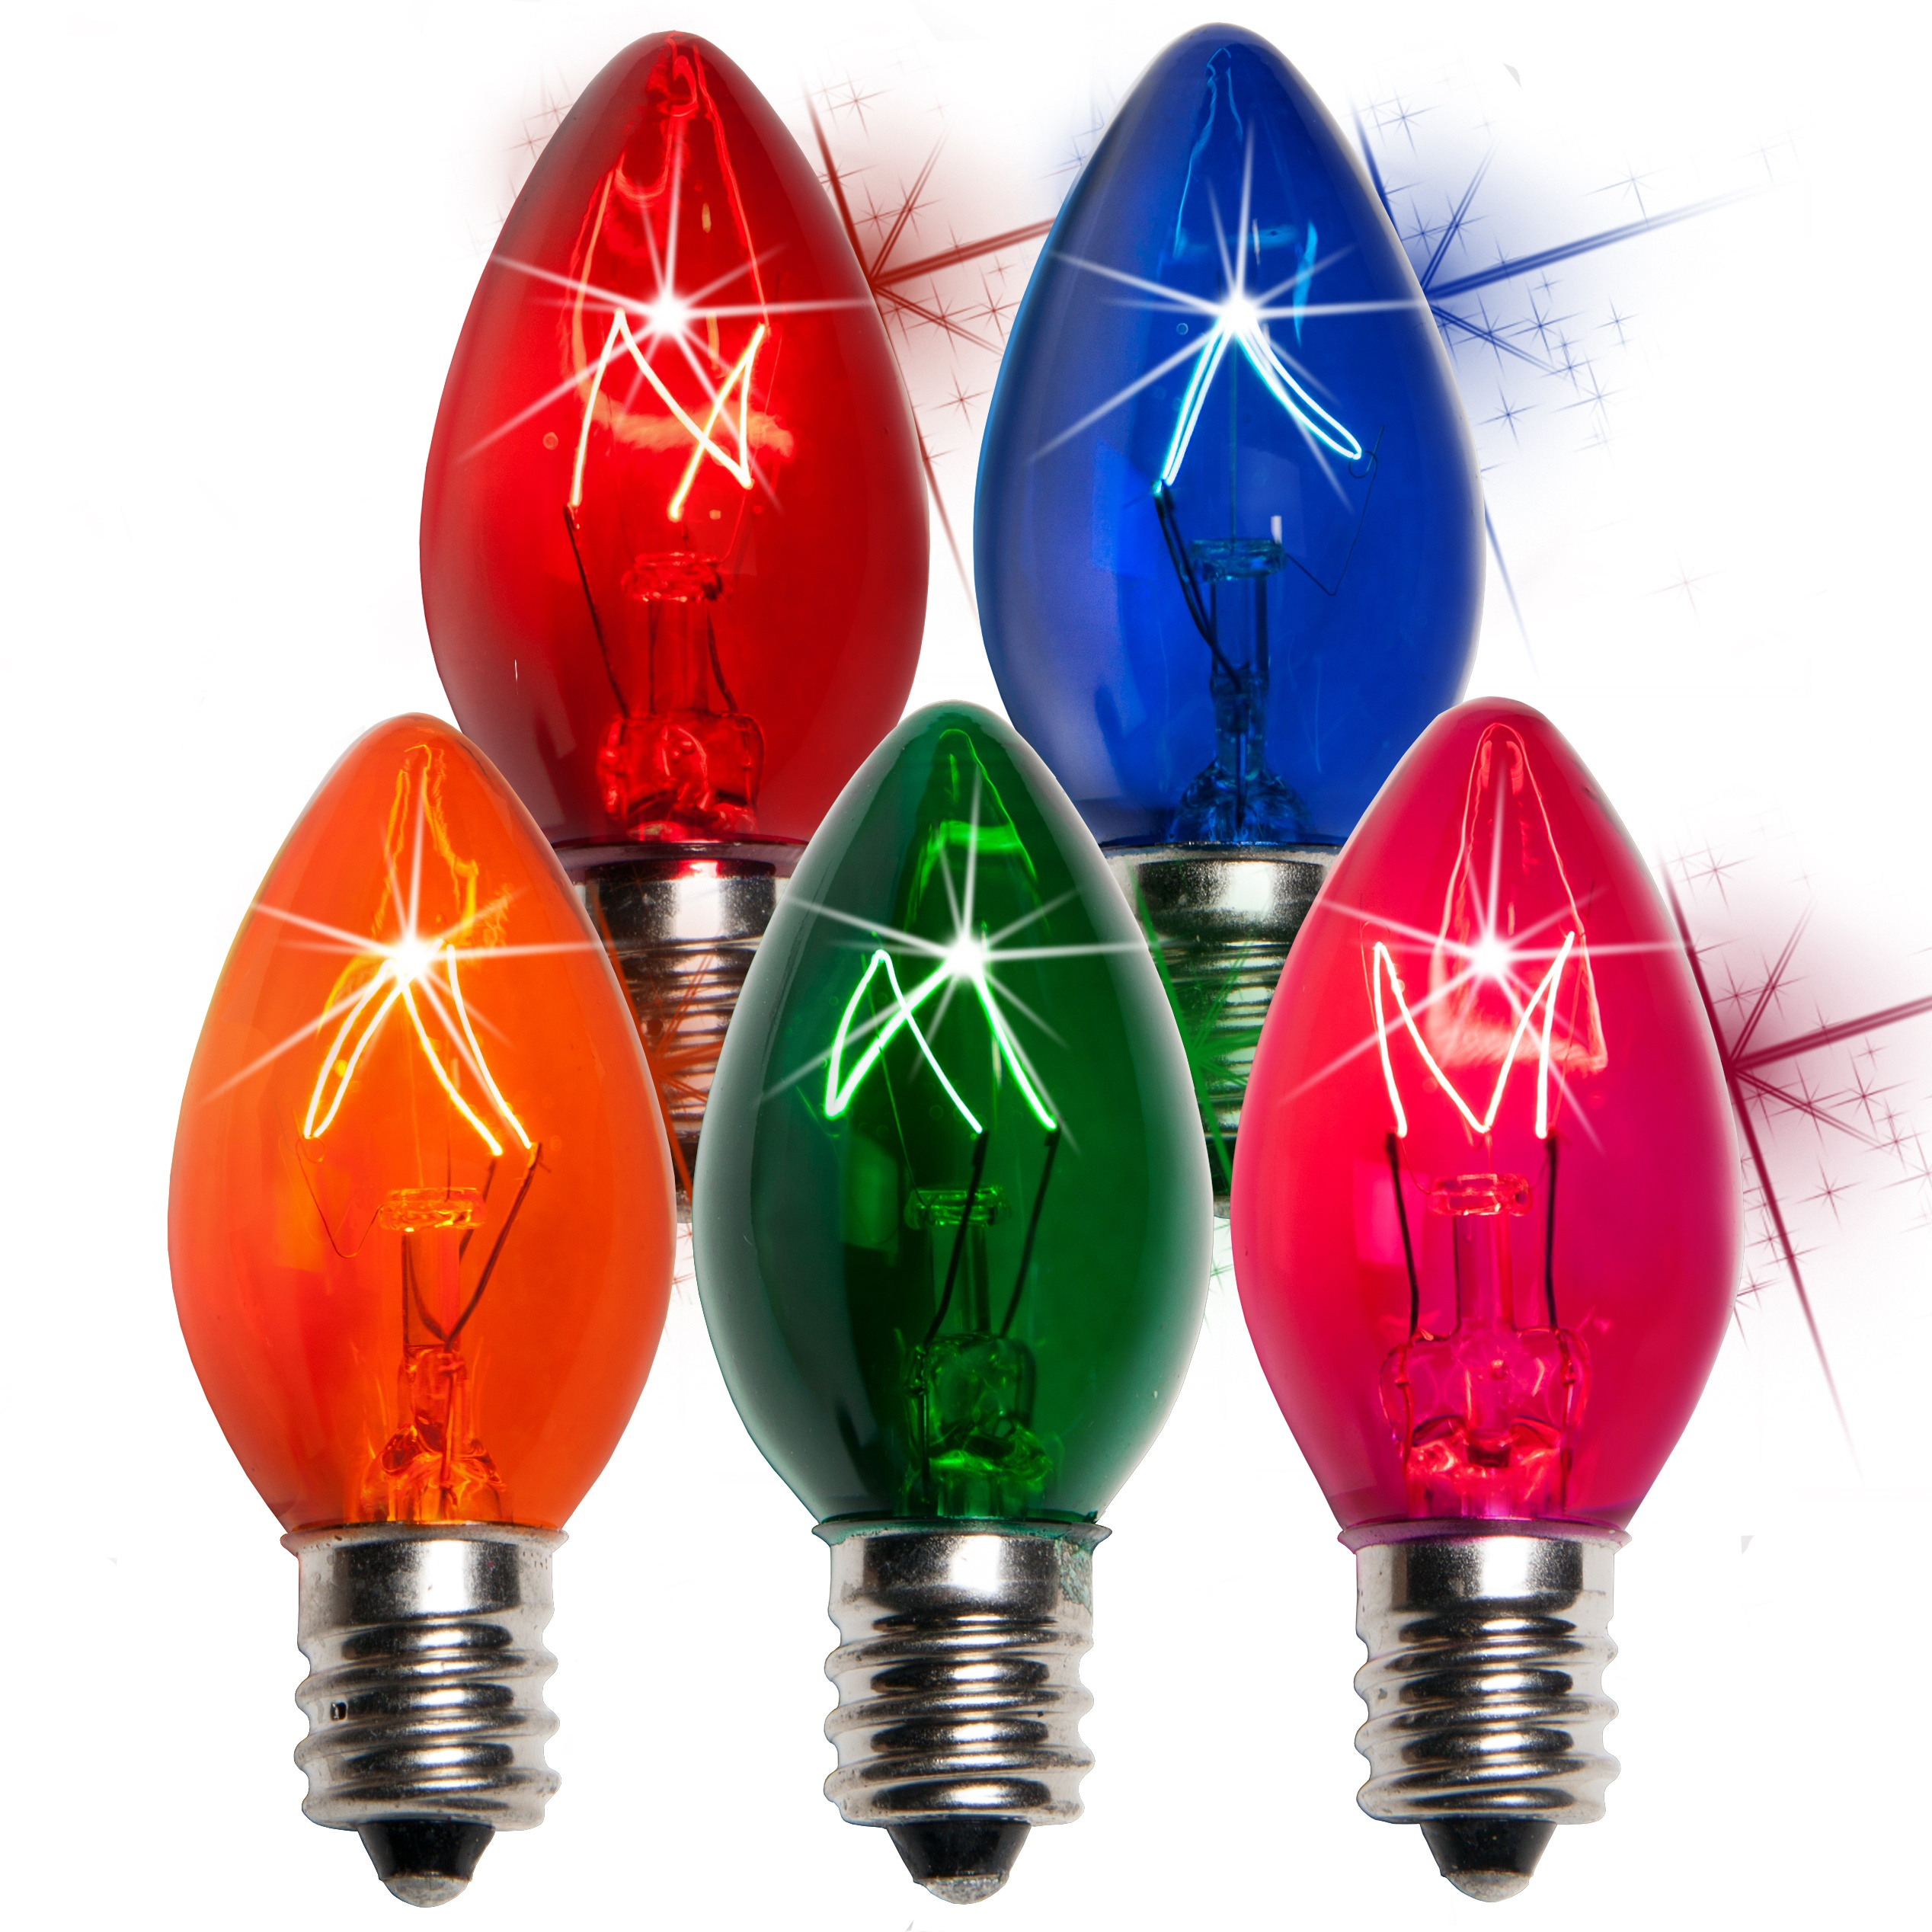 C7 Led Bulb >> C7 Christmas Light Bulb - C7 Twinkle Multicolor Christmas Light Bulbs, 7 Watt